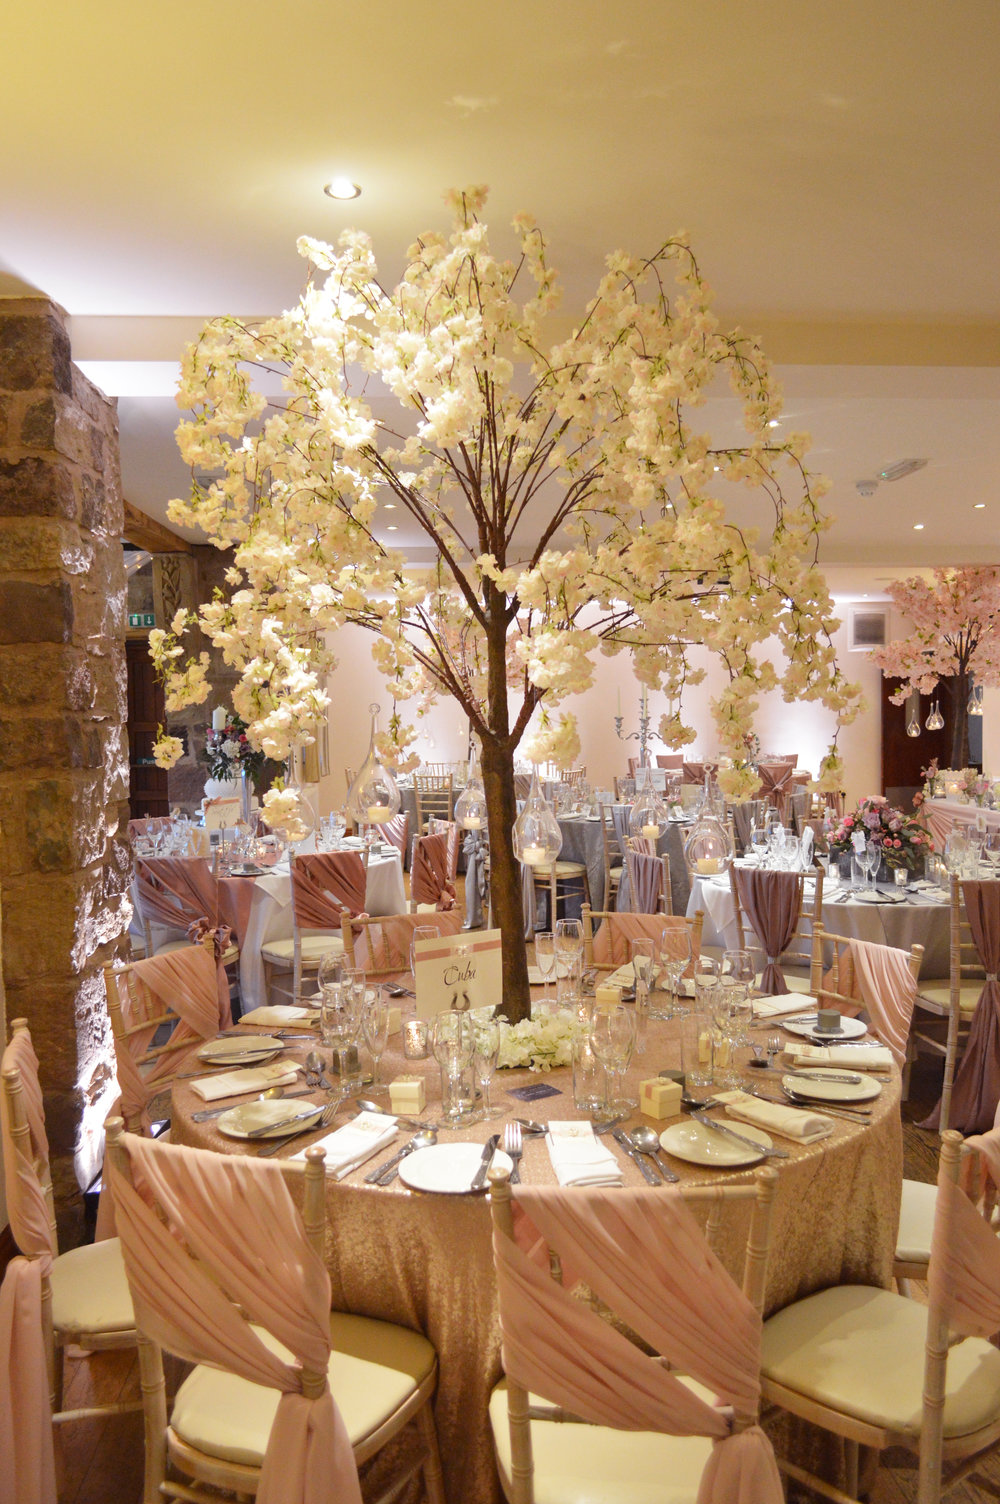 Blossom tree table centrepiece and sequin table cloth